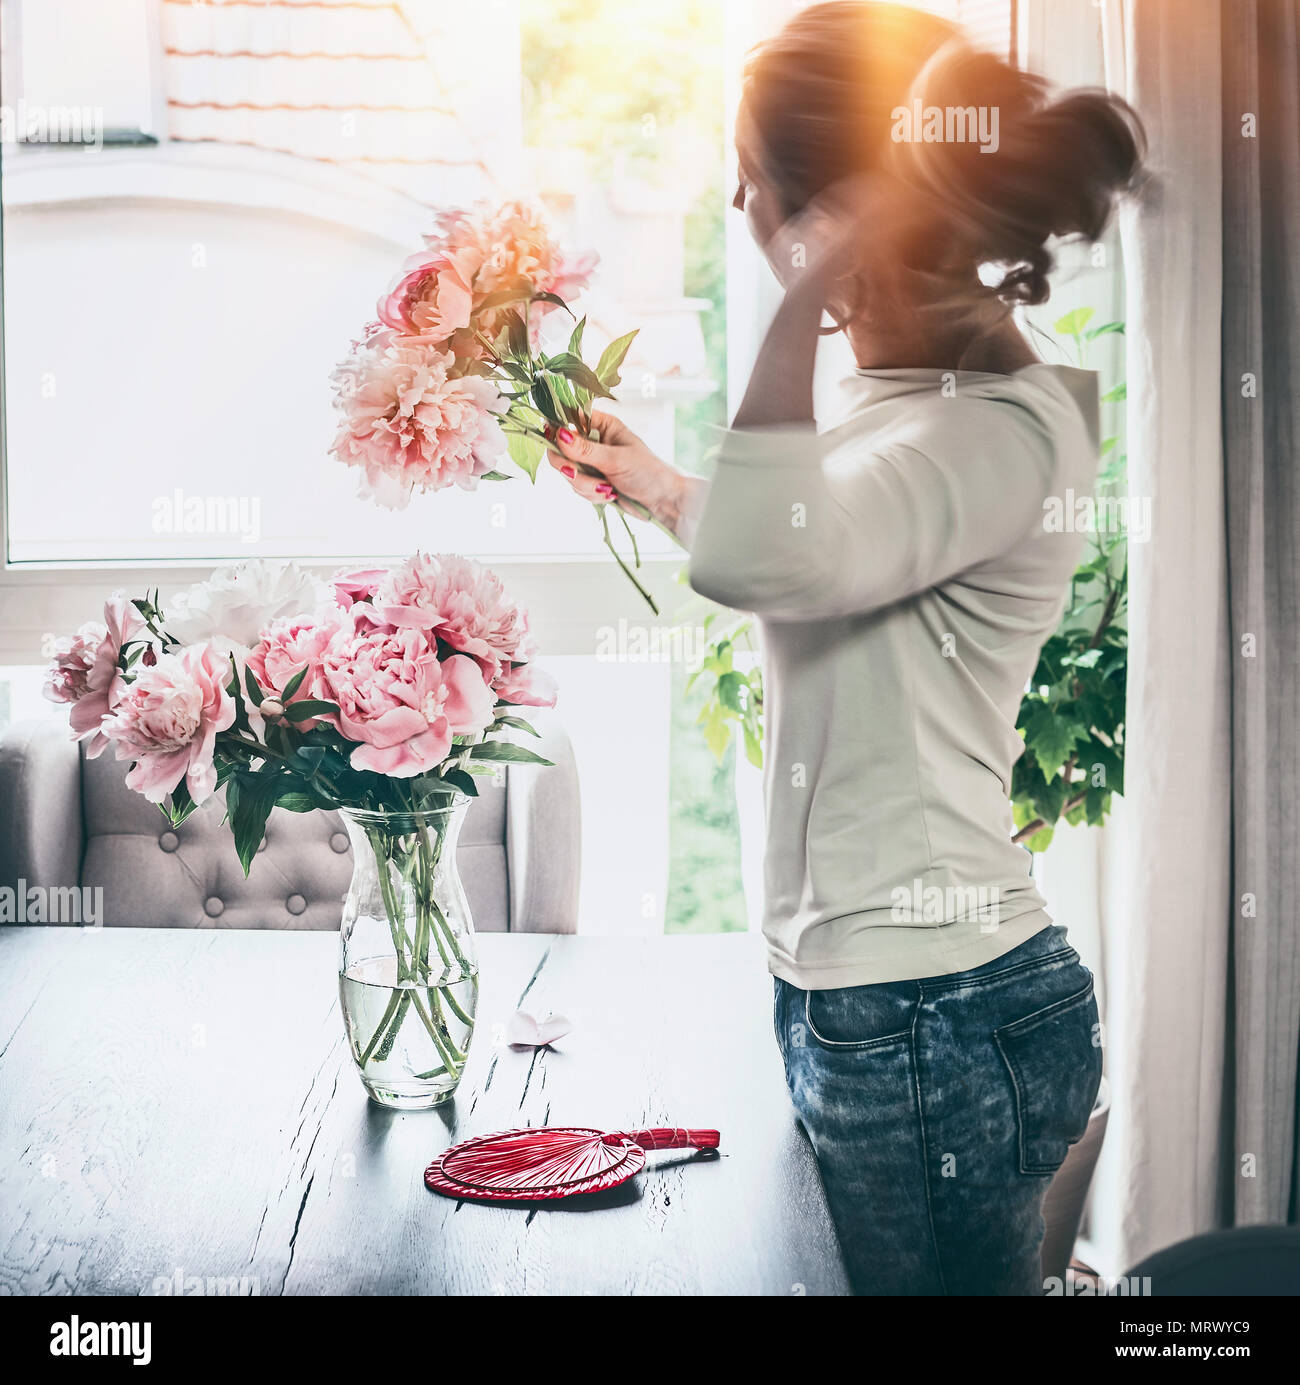 Shapely women arranging peonies bunch in glass vase on table at window with sunset light in living room. Lifestyle. Happy home Stock Photo